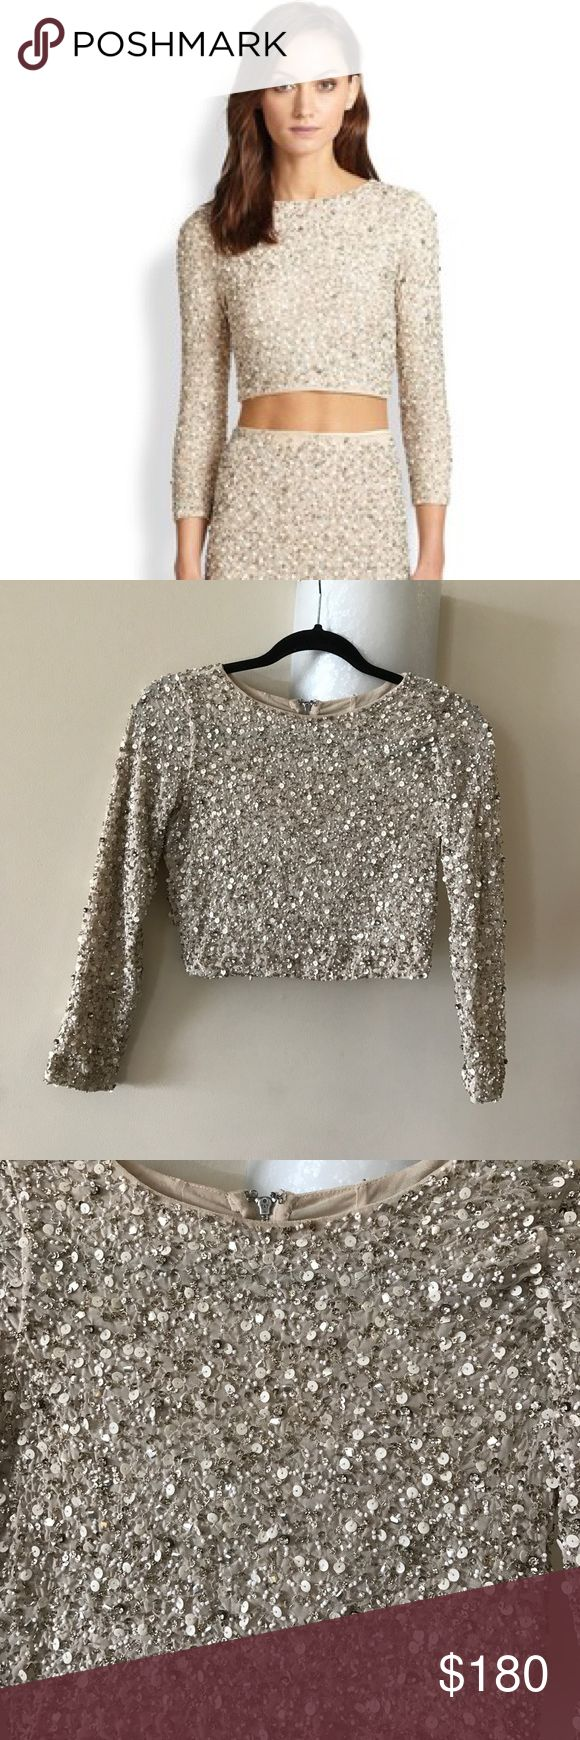 NEW Alice + Olivia Lacey Embellished Beaded Crop NEW with tags! Lacey Embellished Crop Top Stunning sequins and beads embellish a midriff-baring cropped top with exposed back zip. Roundneck. Three-quarter sleeves. Alice + Olivia Tops Crop Tops